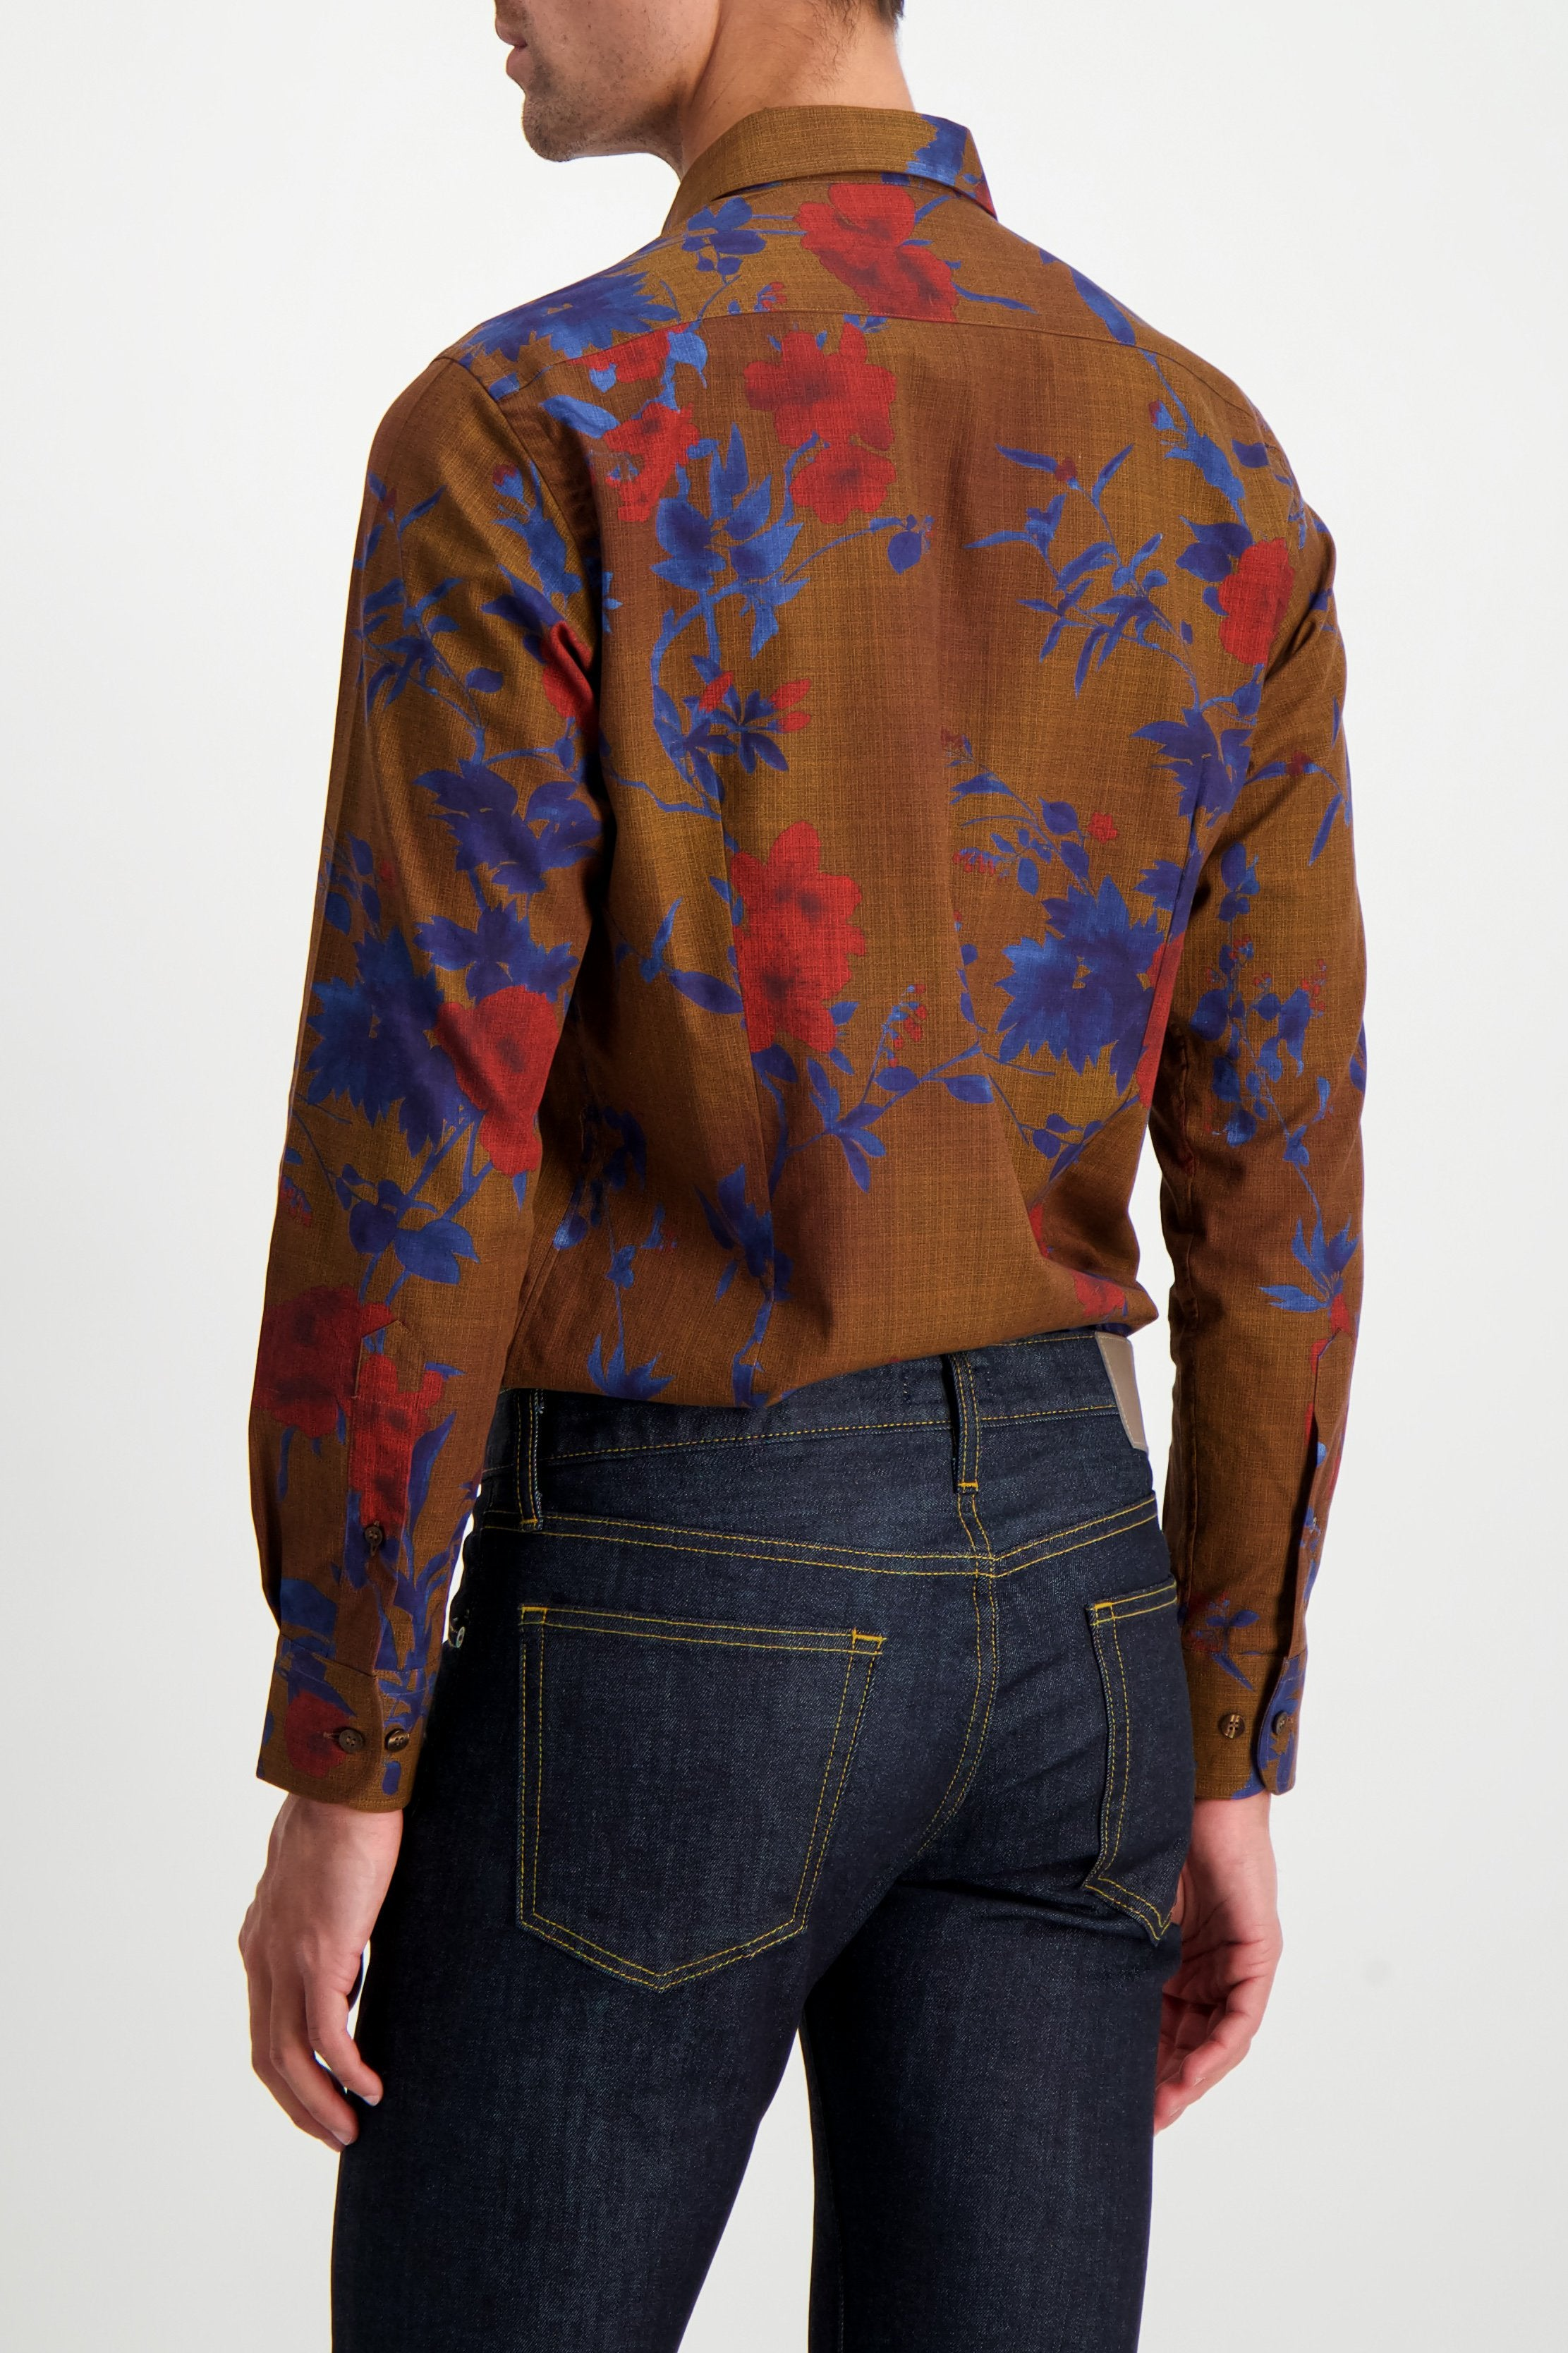 Back Crop Image Of Model Wearing Etro Floral Dress Shirt